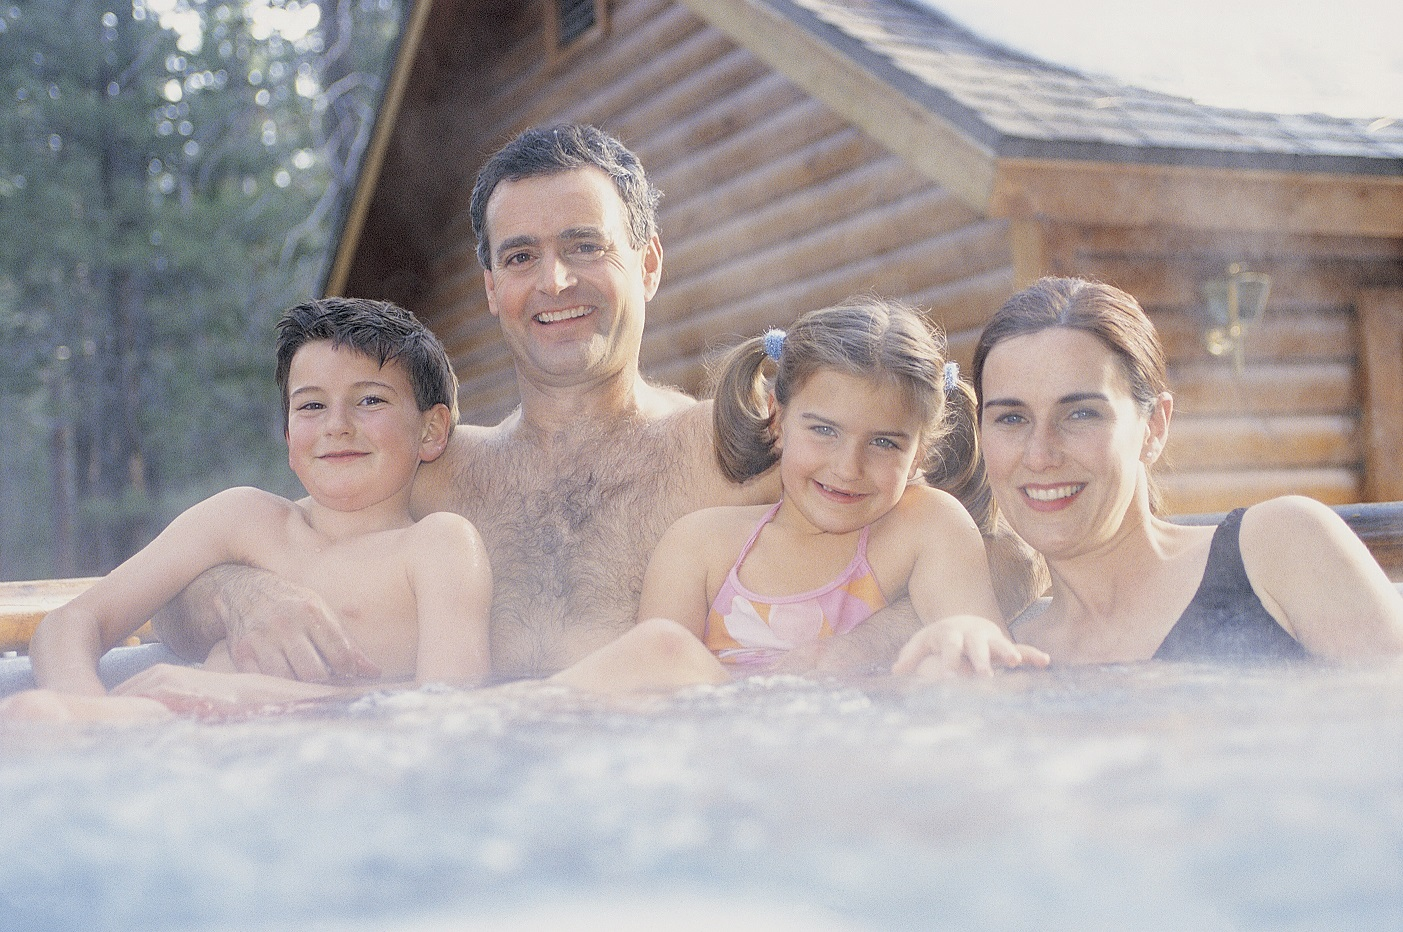 How owning a hot tub can improve your family life